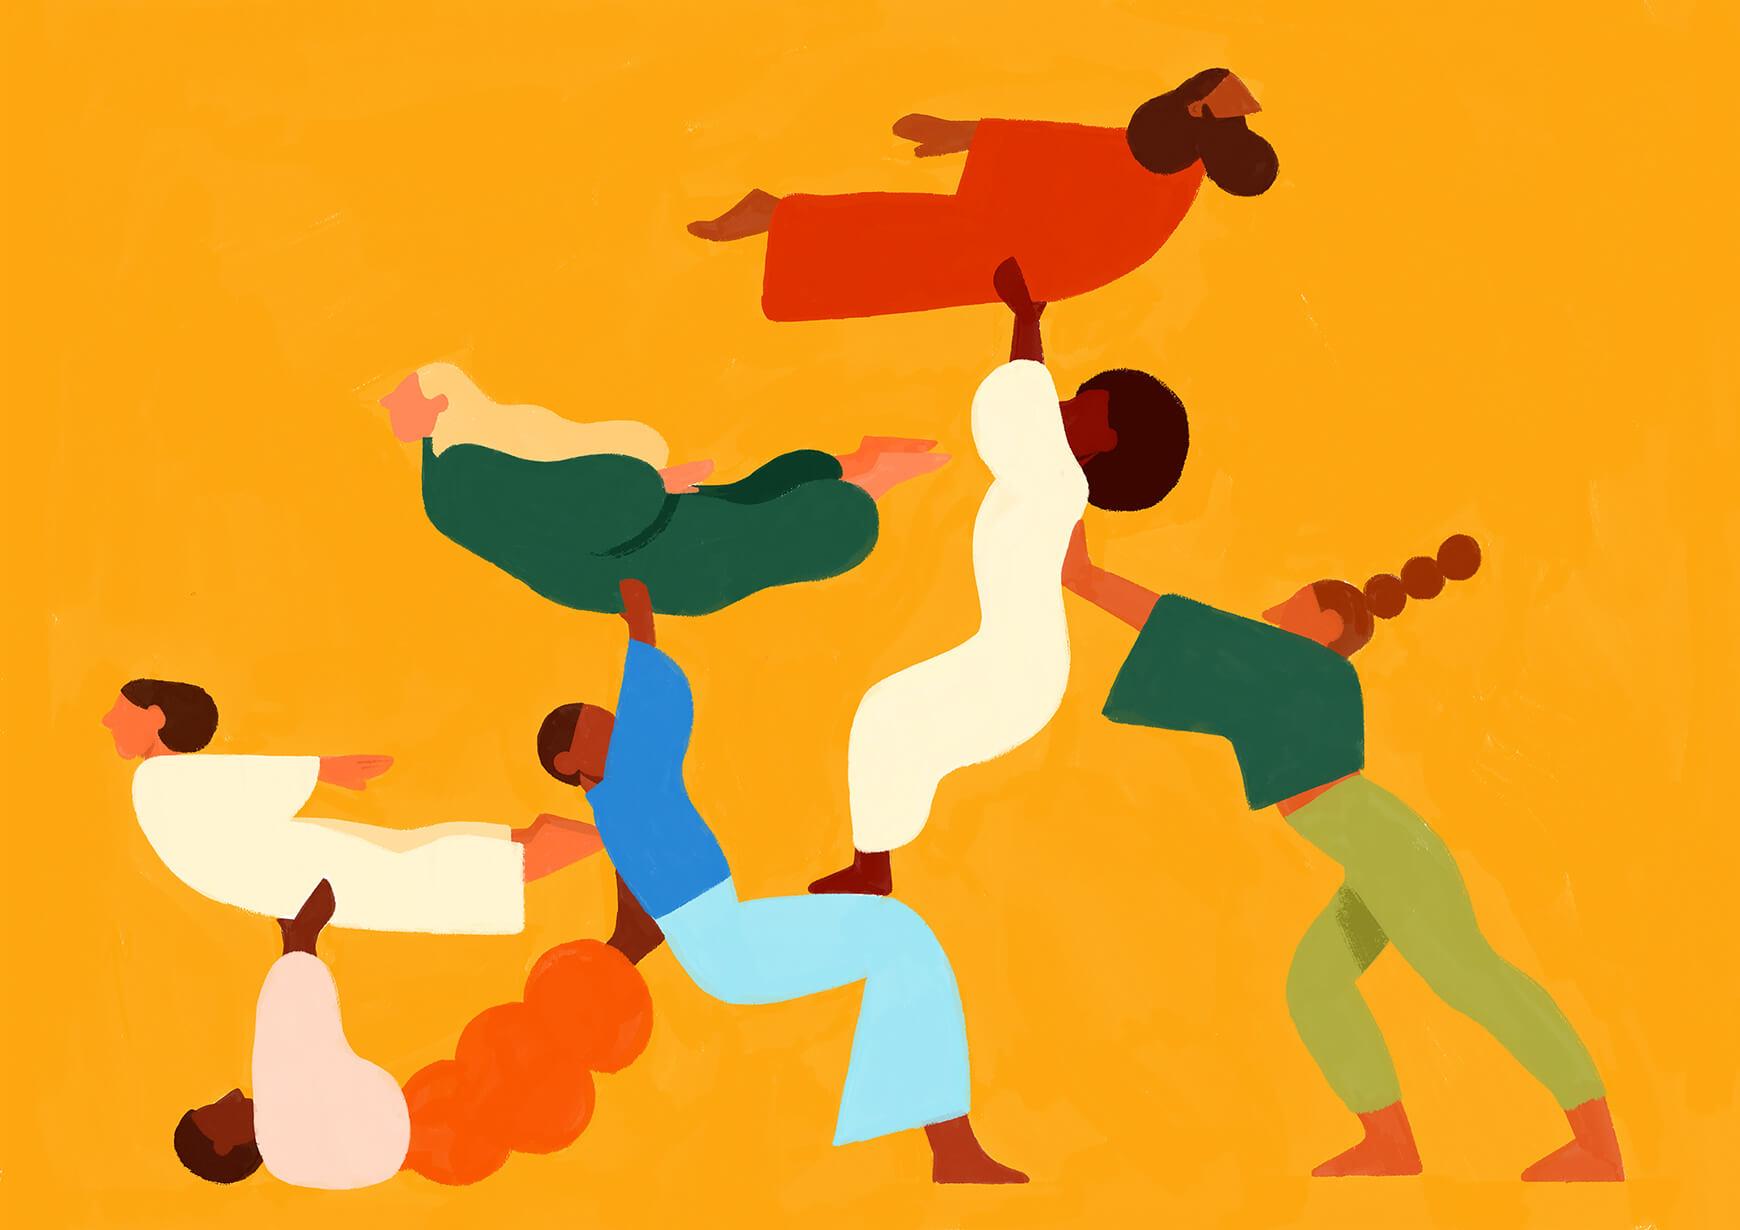 new-landscapes-community-strength-together-people-illustration-ilustracion-violeta-noy-thumbnail-1